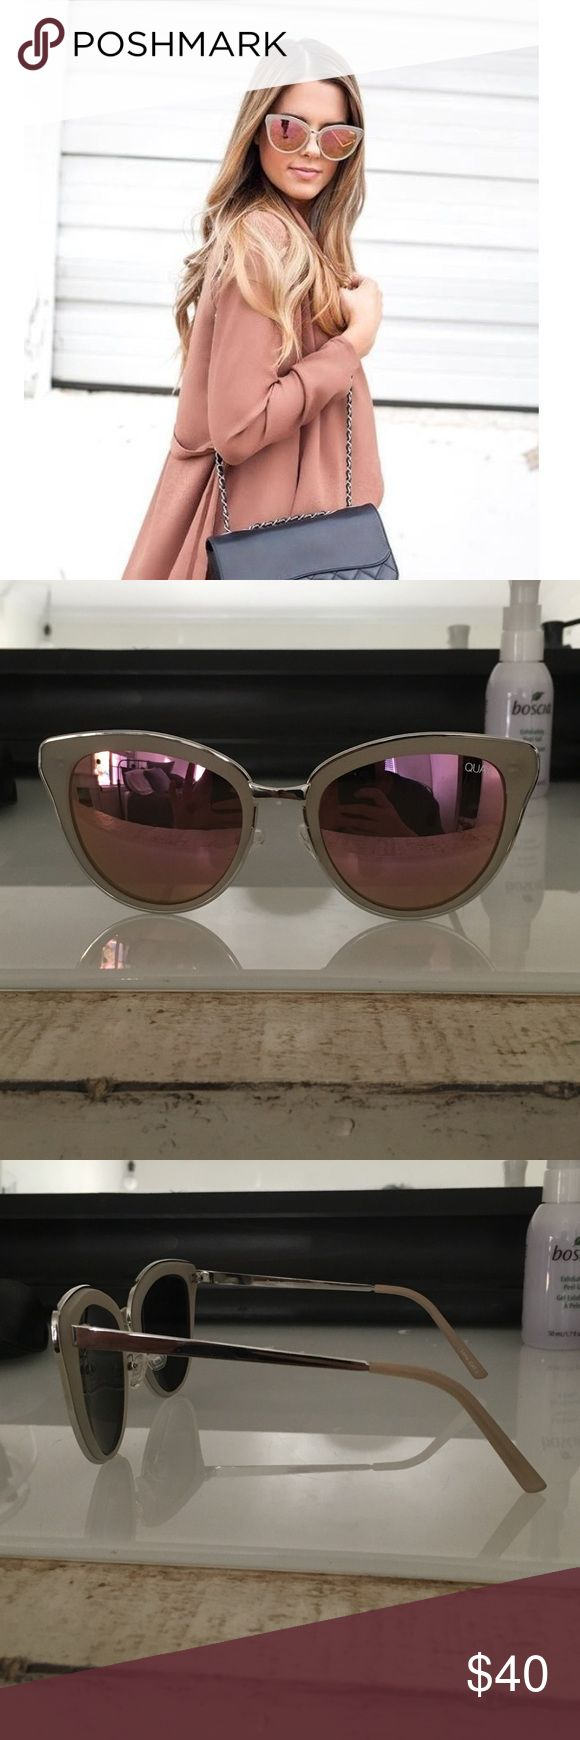 Quay sunglasses Style name: every little thing. Brand new with unopened case and clear plastic bag. Quay Australia Accessories Sunglasses